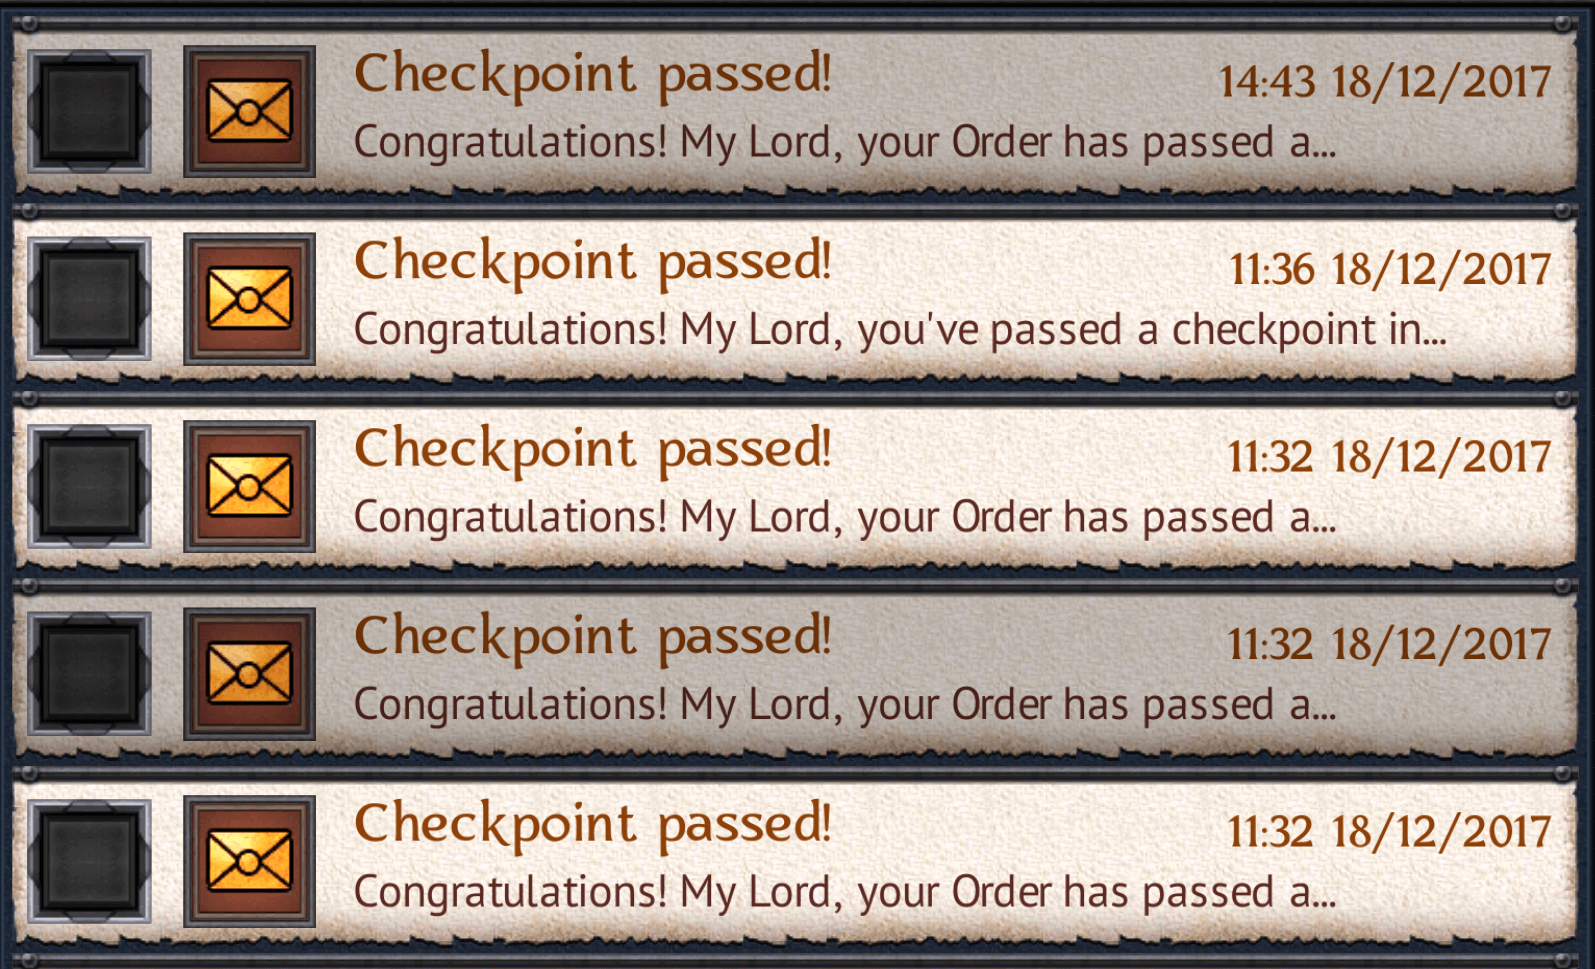 Checkpoints Passed